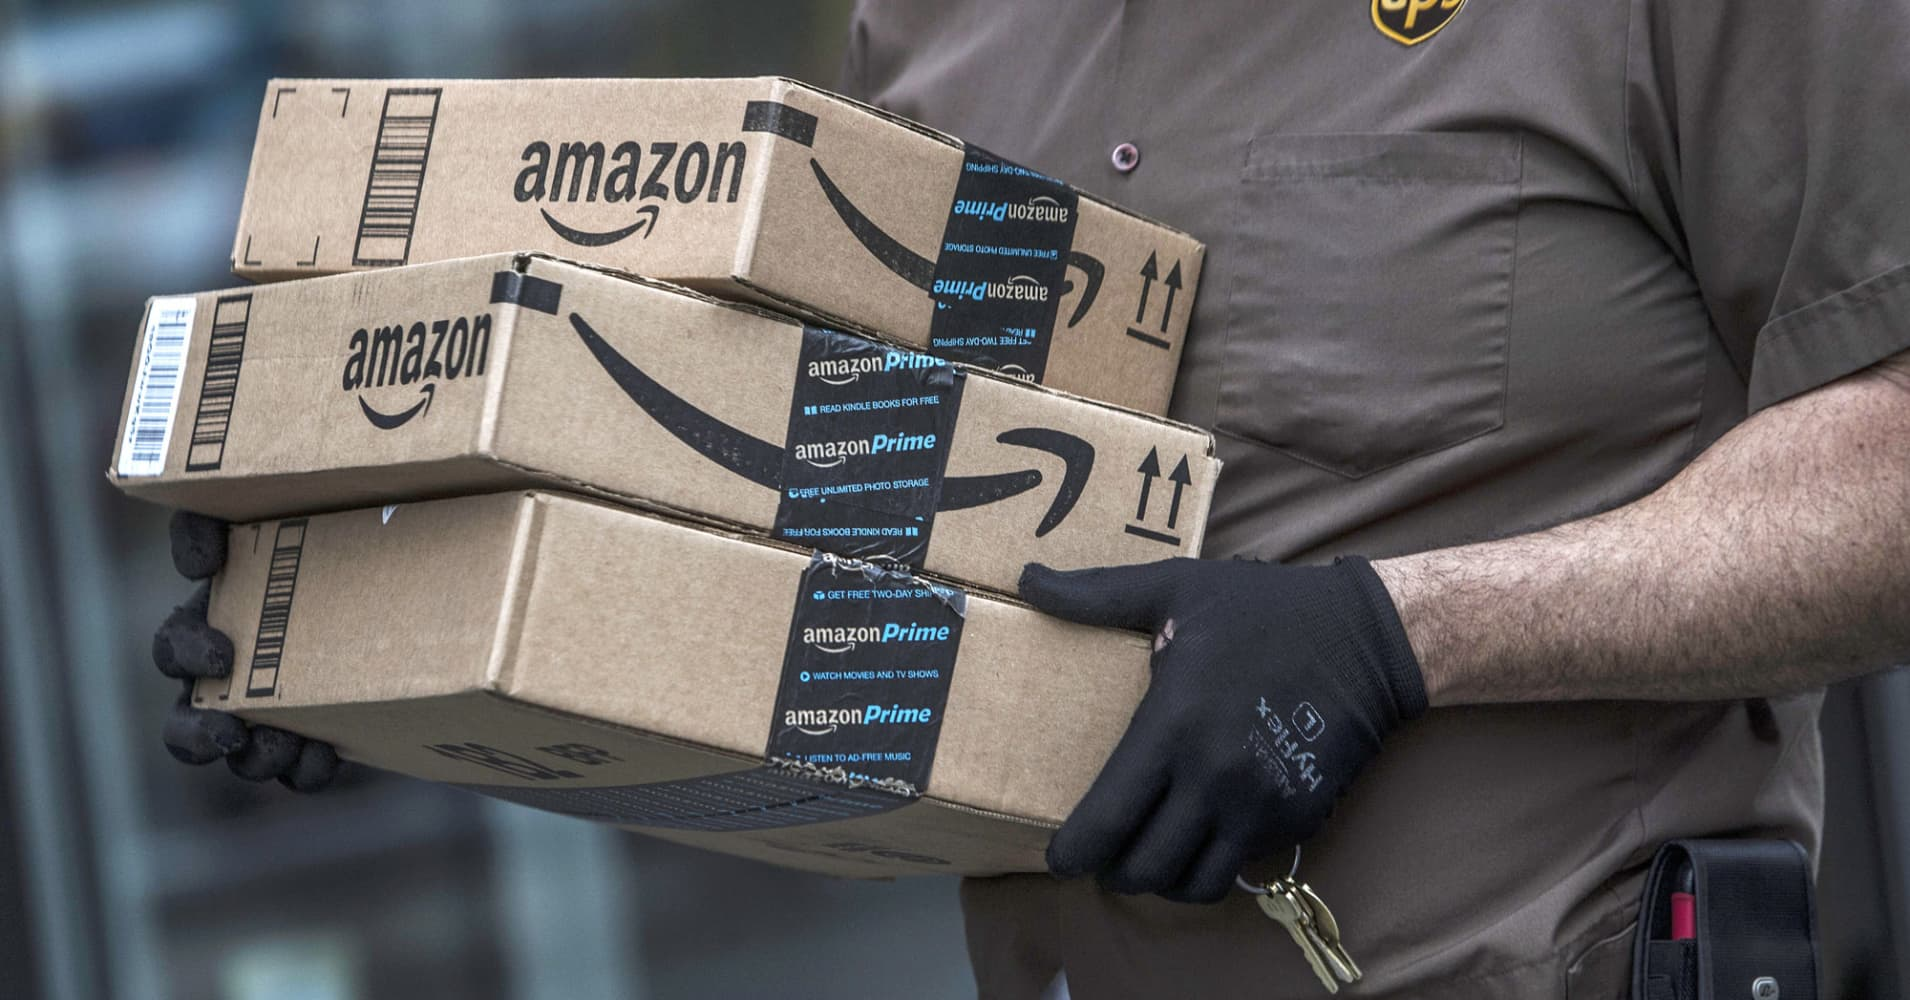 Amazon Makes Clear it's Now Competing with Shippers like FedEx and UPS in its Annual Filing